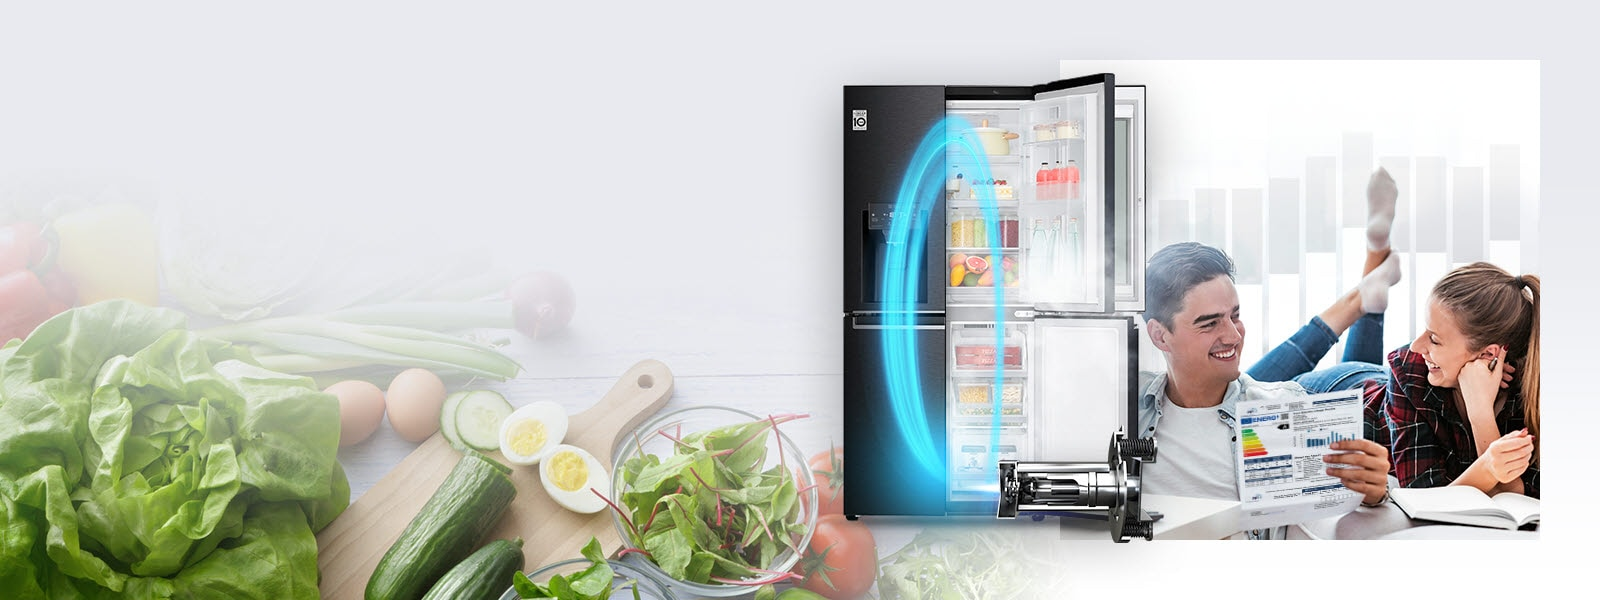 An LG refrigerator with one side of doors open displaying produce and drinks inside is in the background along with a magnified image of fresh produce. Just in front of it is the LG Inverter Linear Compressor with a blue neon oval showing the energy from the machine in the refrigerator. Also in the image is a man and woman smiling at each other as the man holds an energy usage chart for the refrigerator.